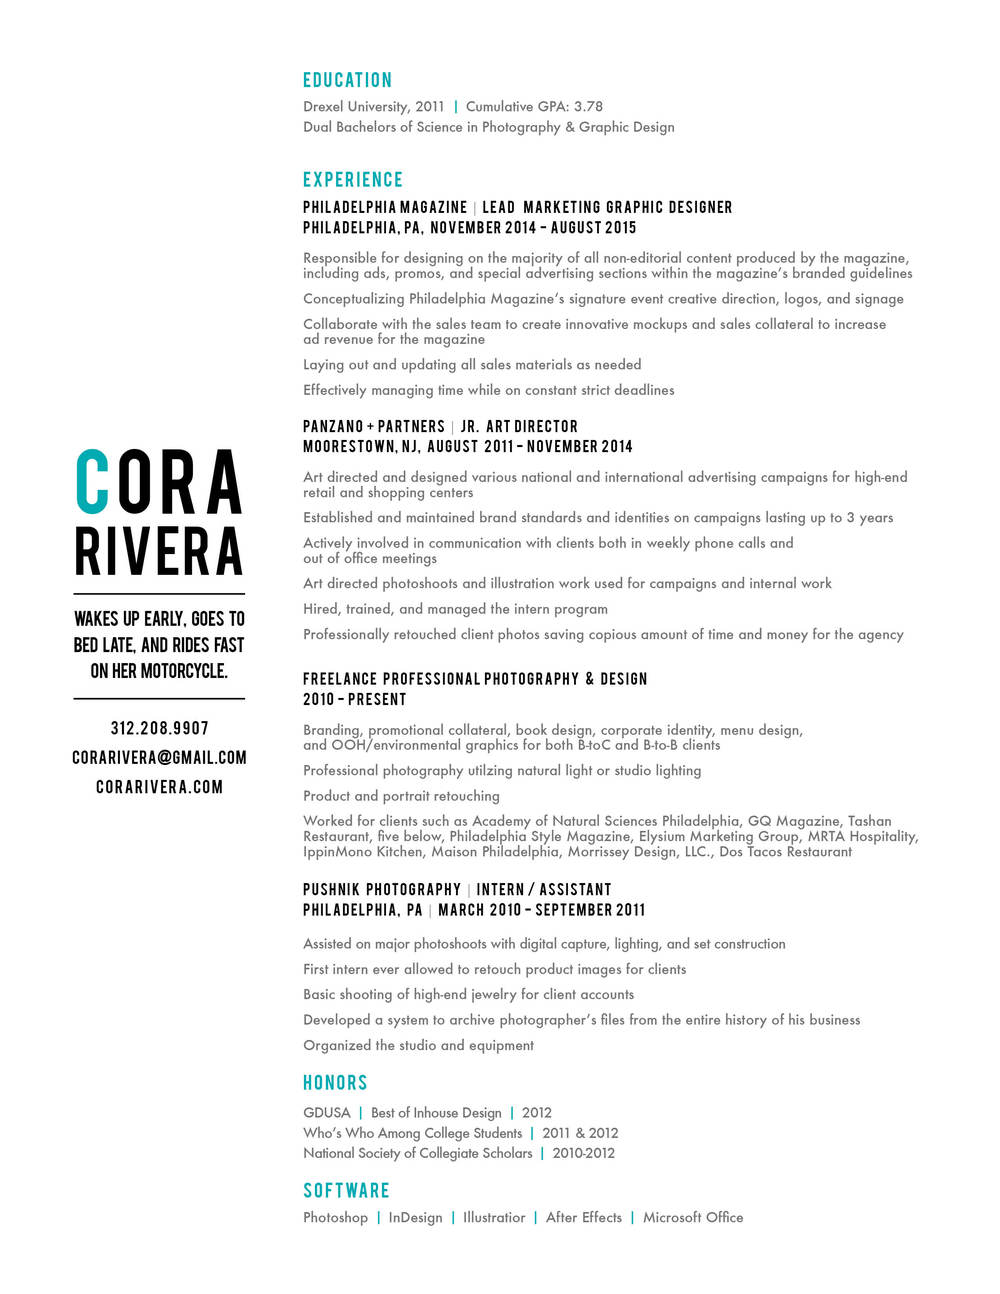 resume for photographer lance professional creative online resume for photographer lance professional resume cora rivera about resume